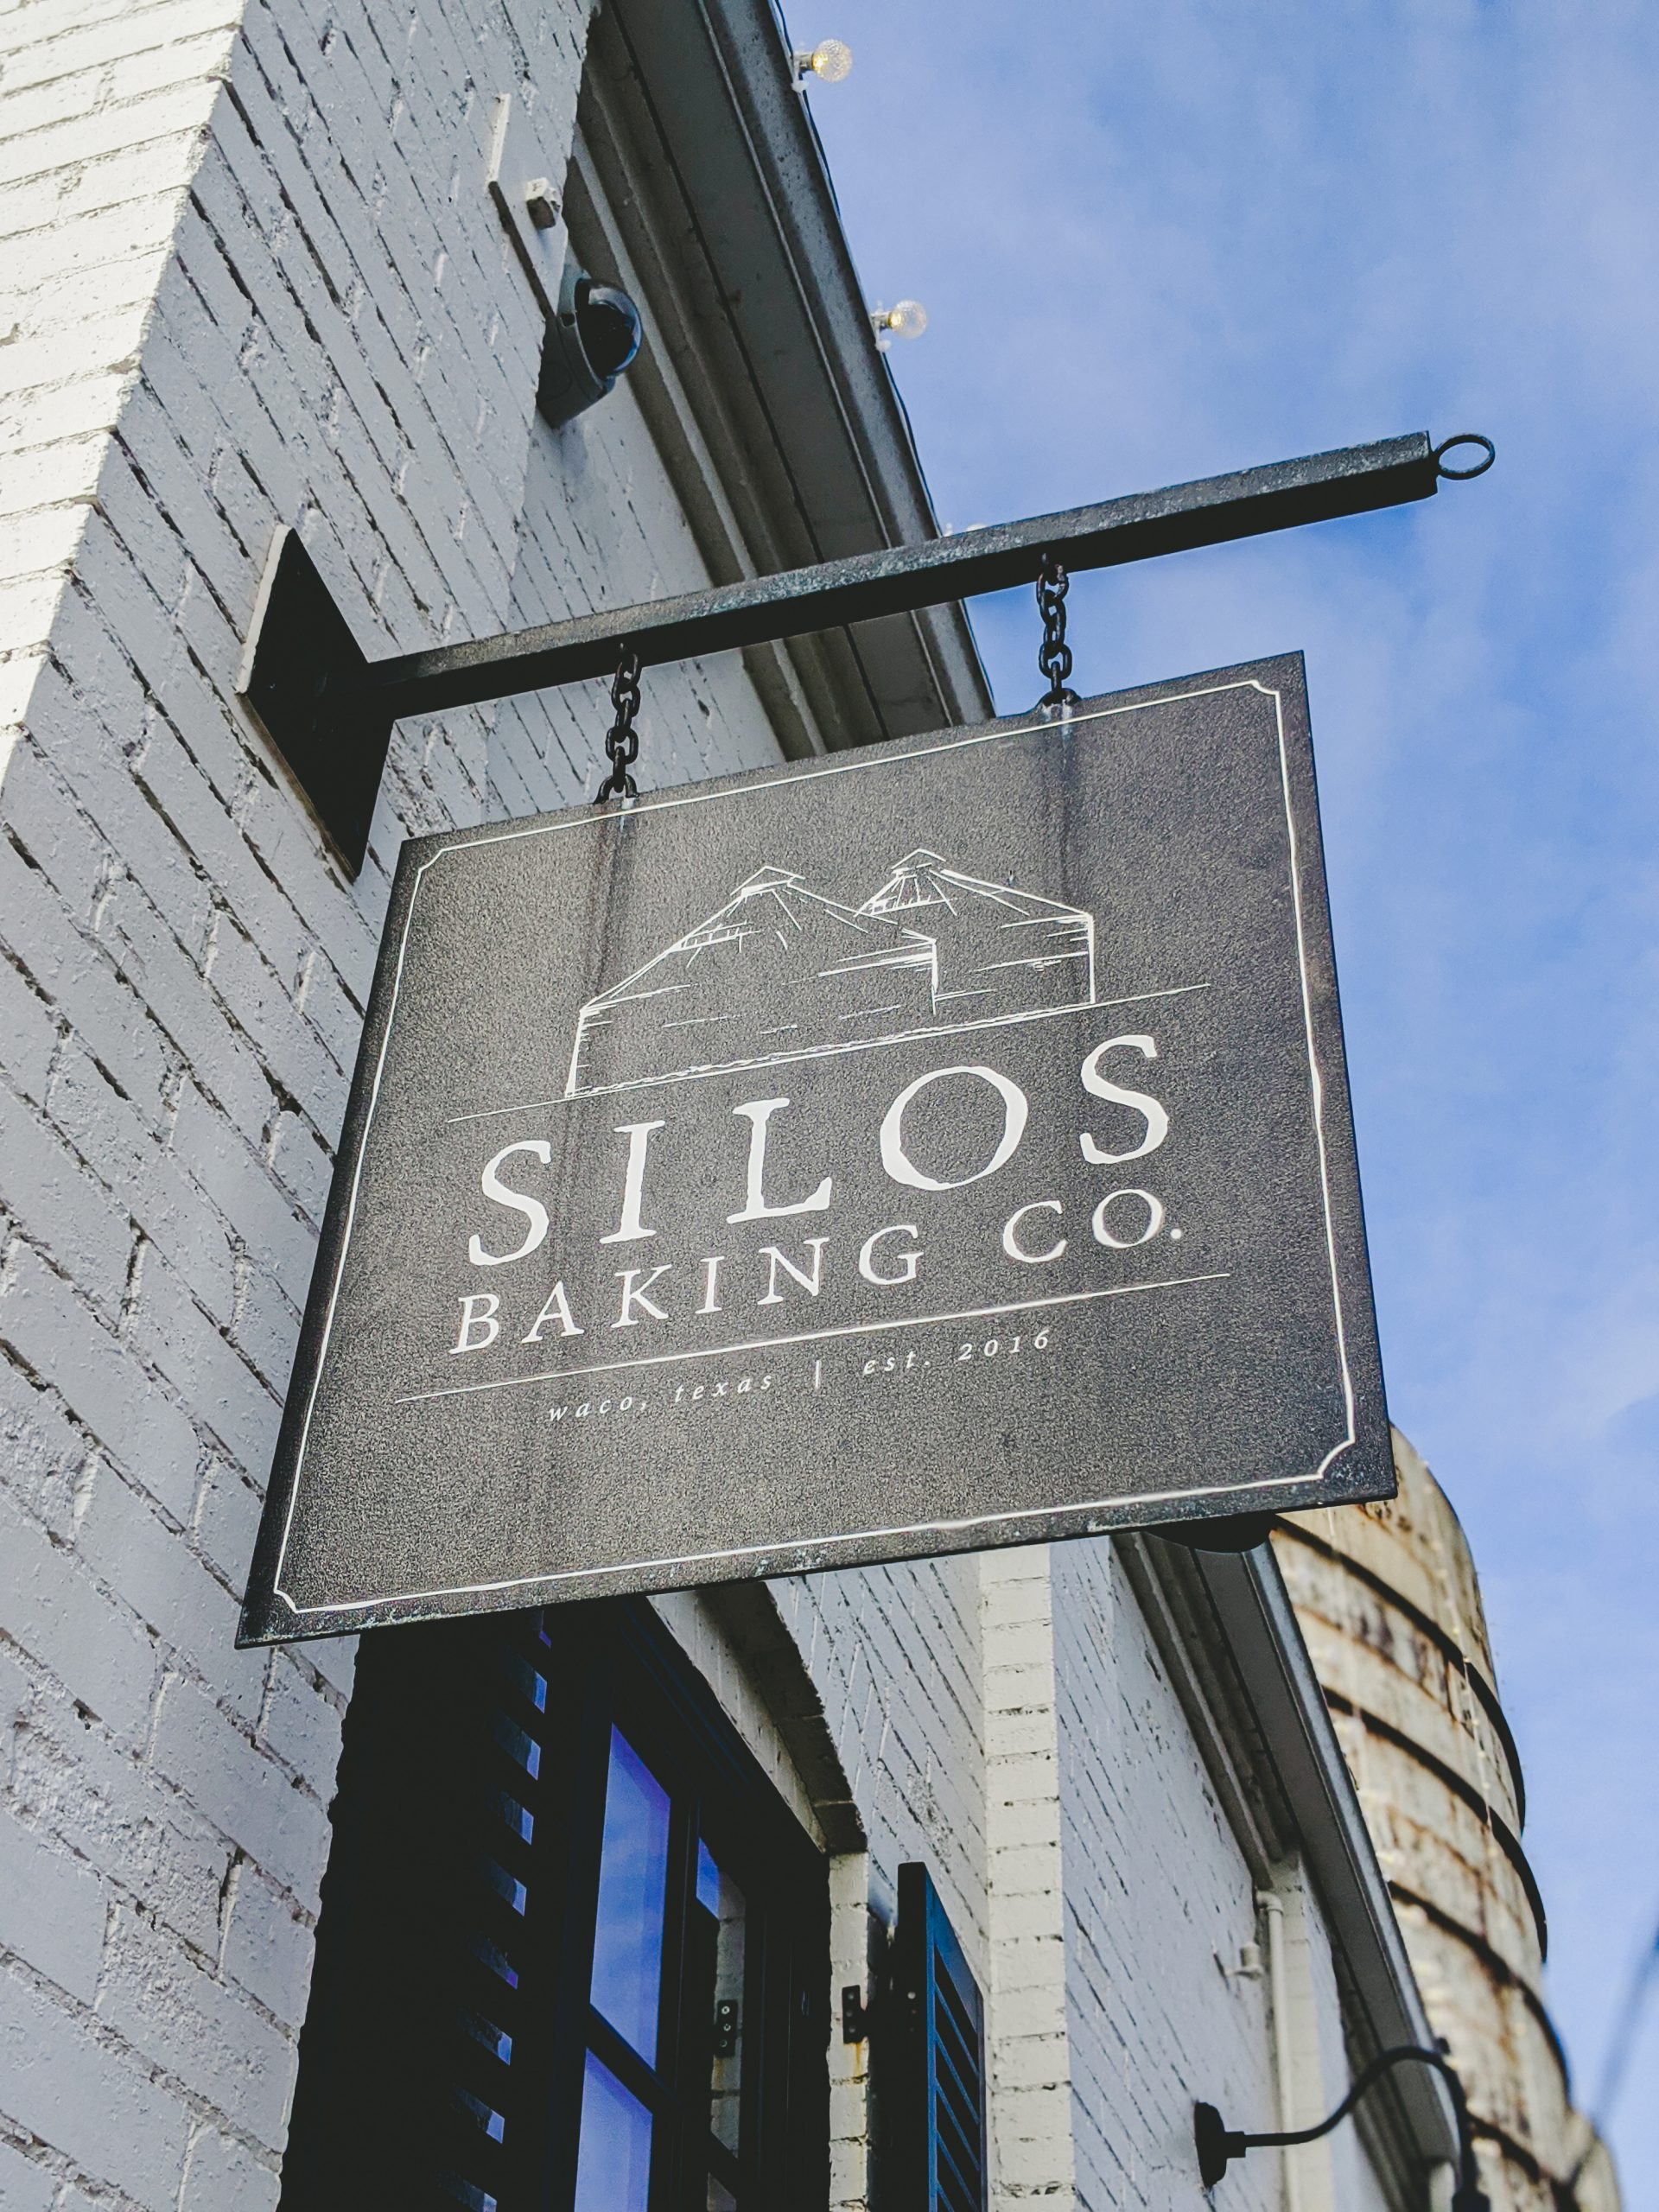 magnolia silos baking co. sign